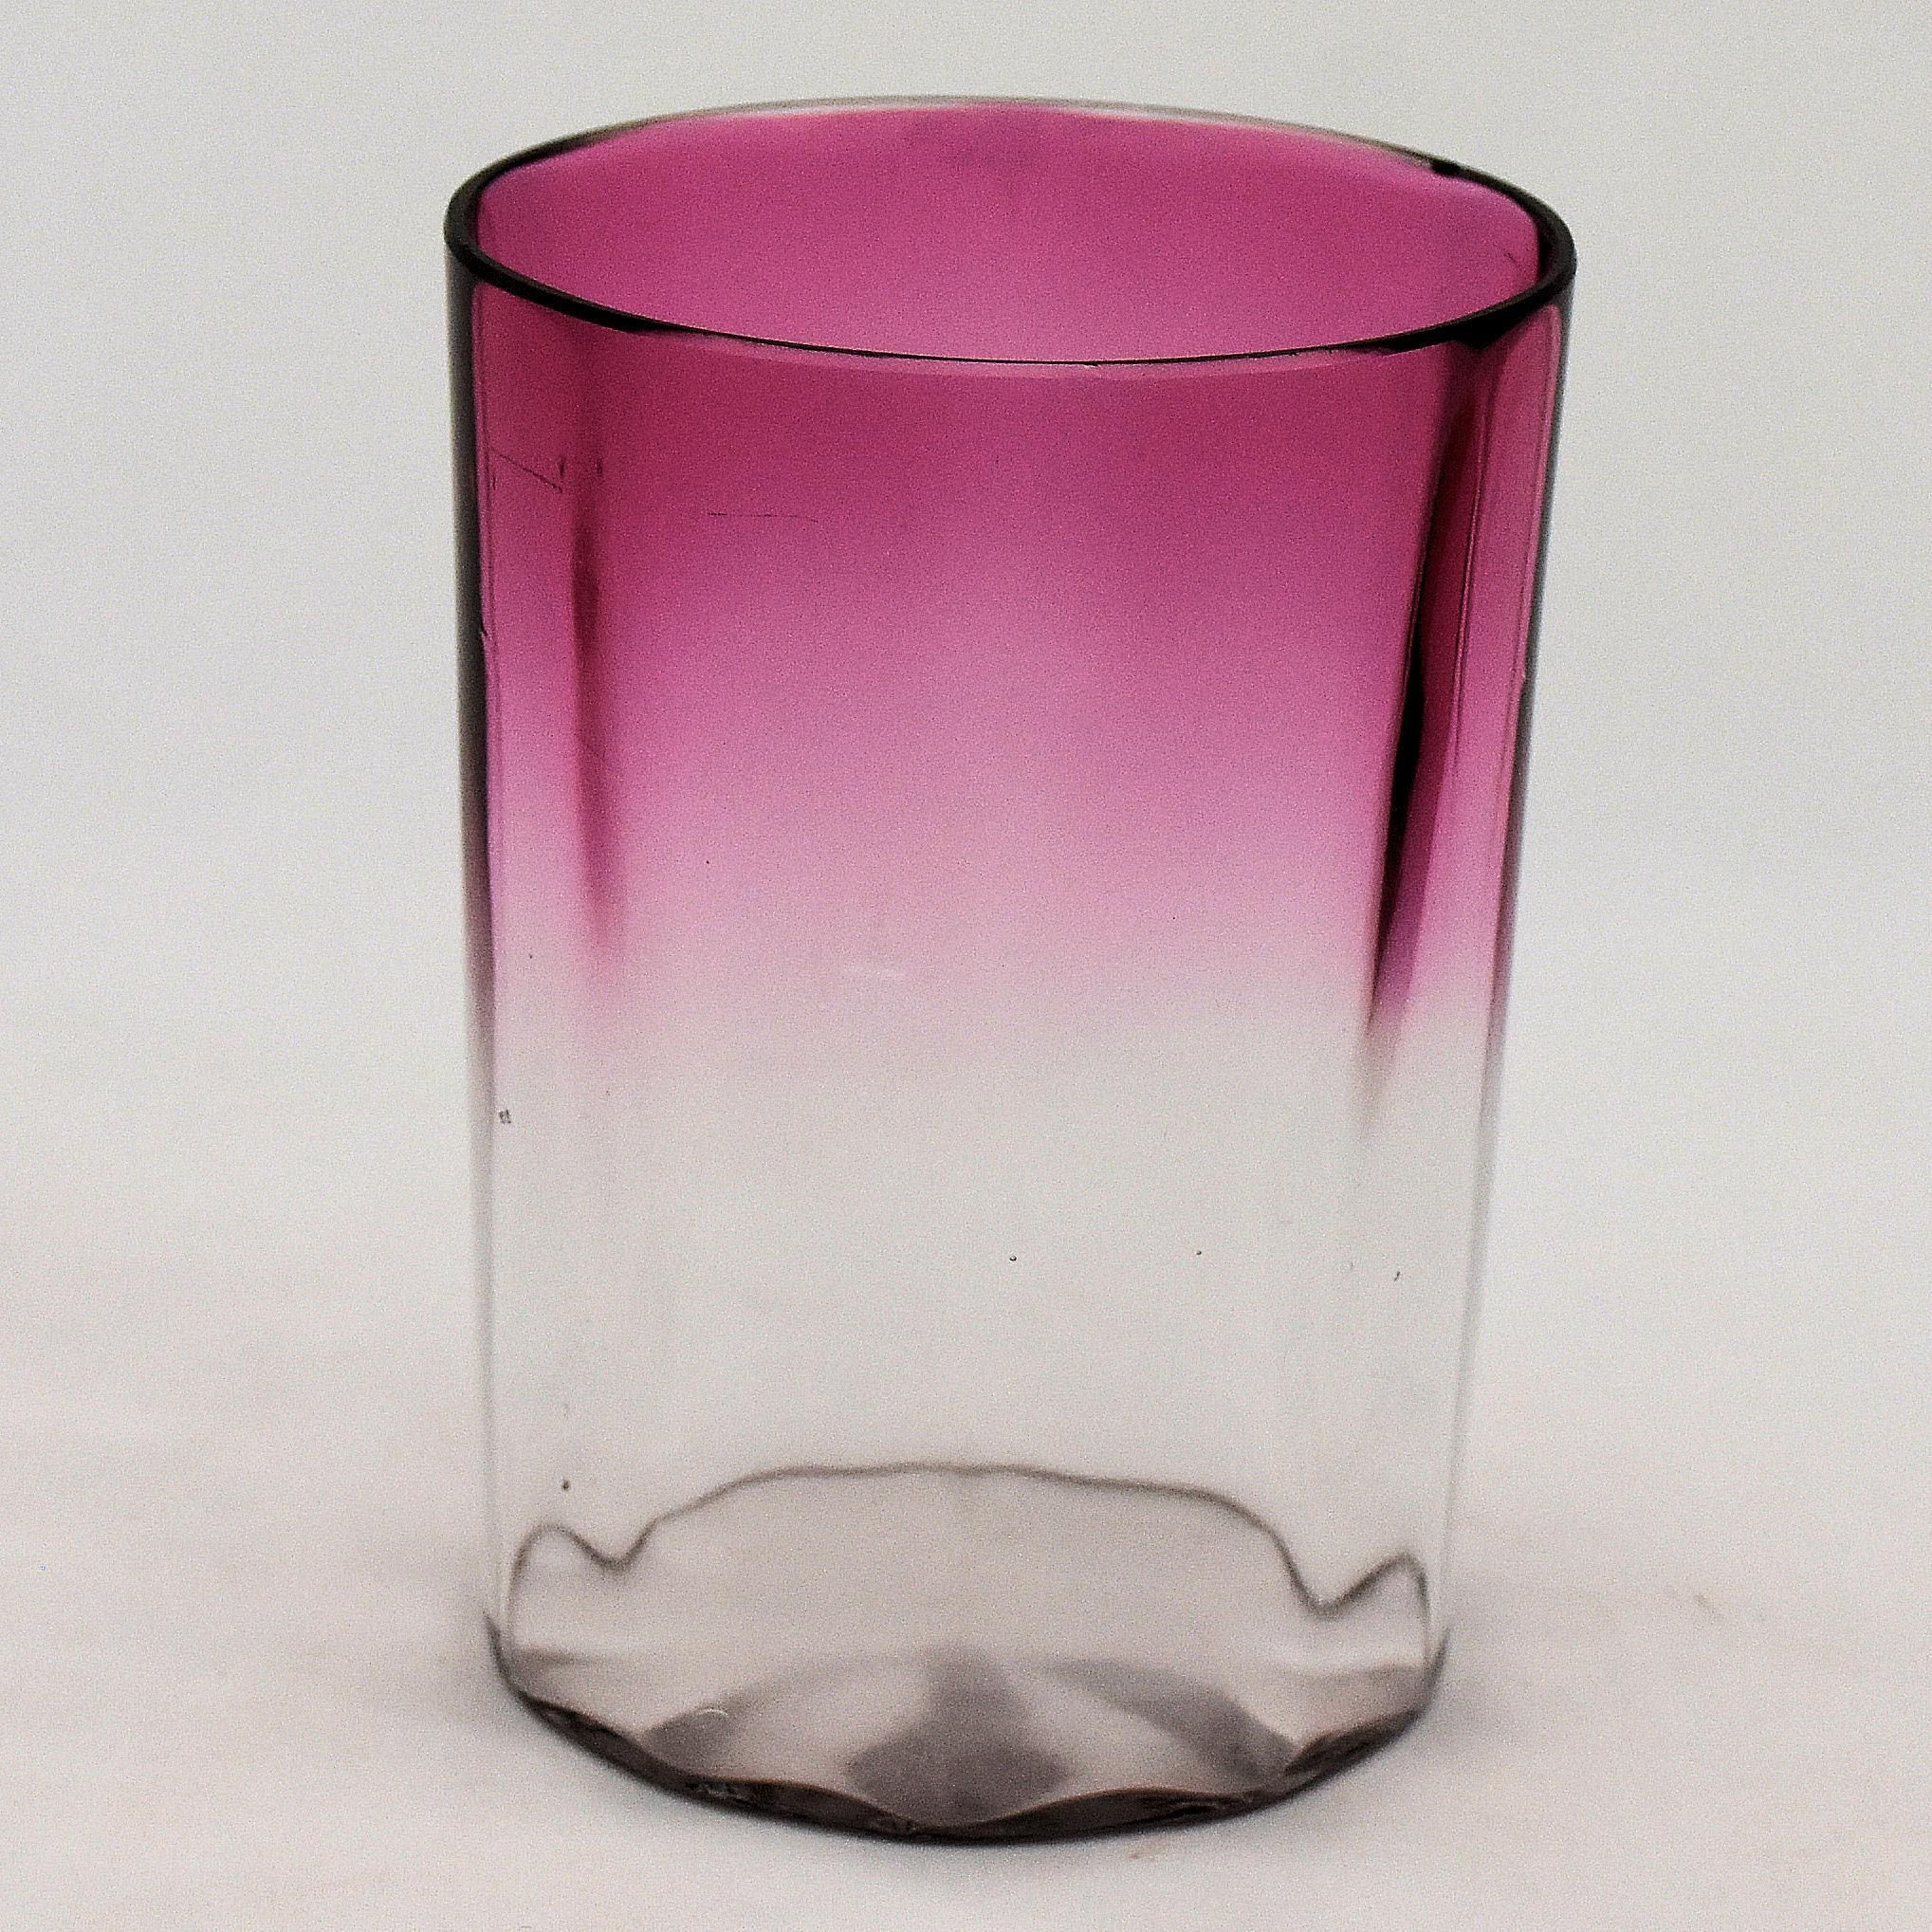 19 Fabulous Purple Swirl Vase